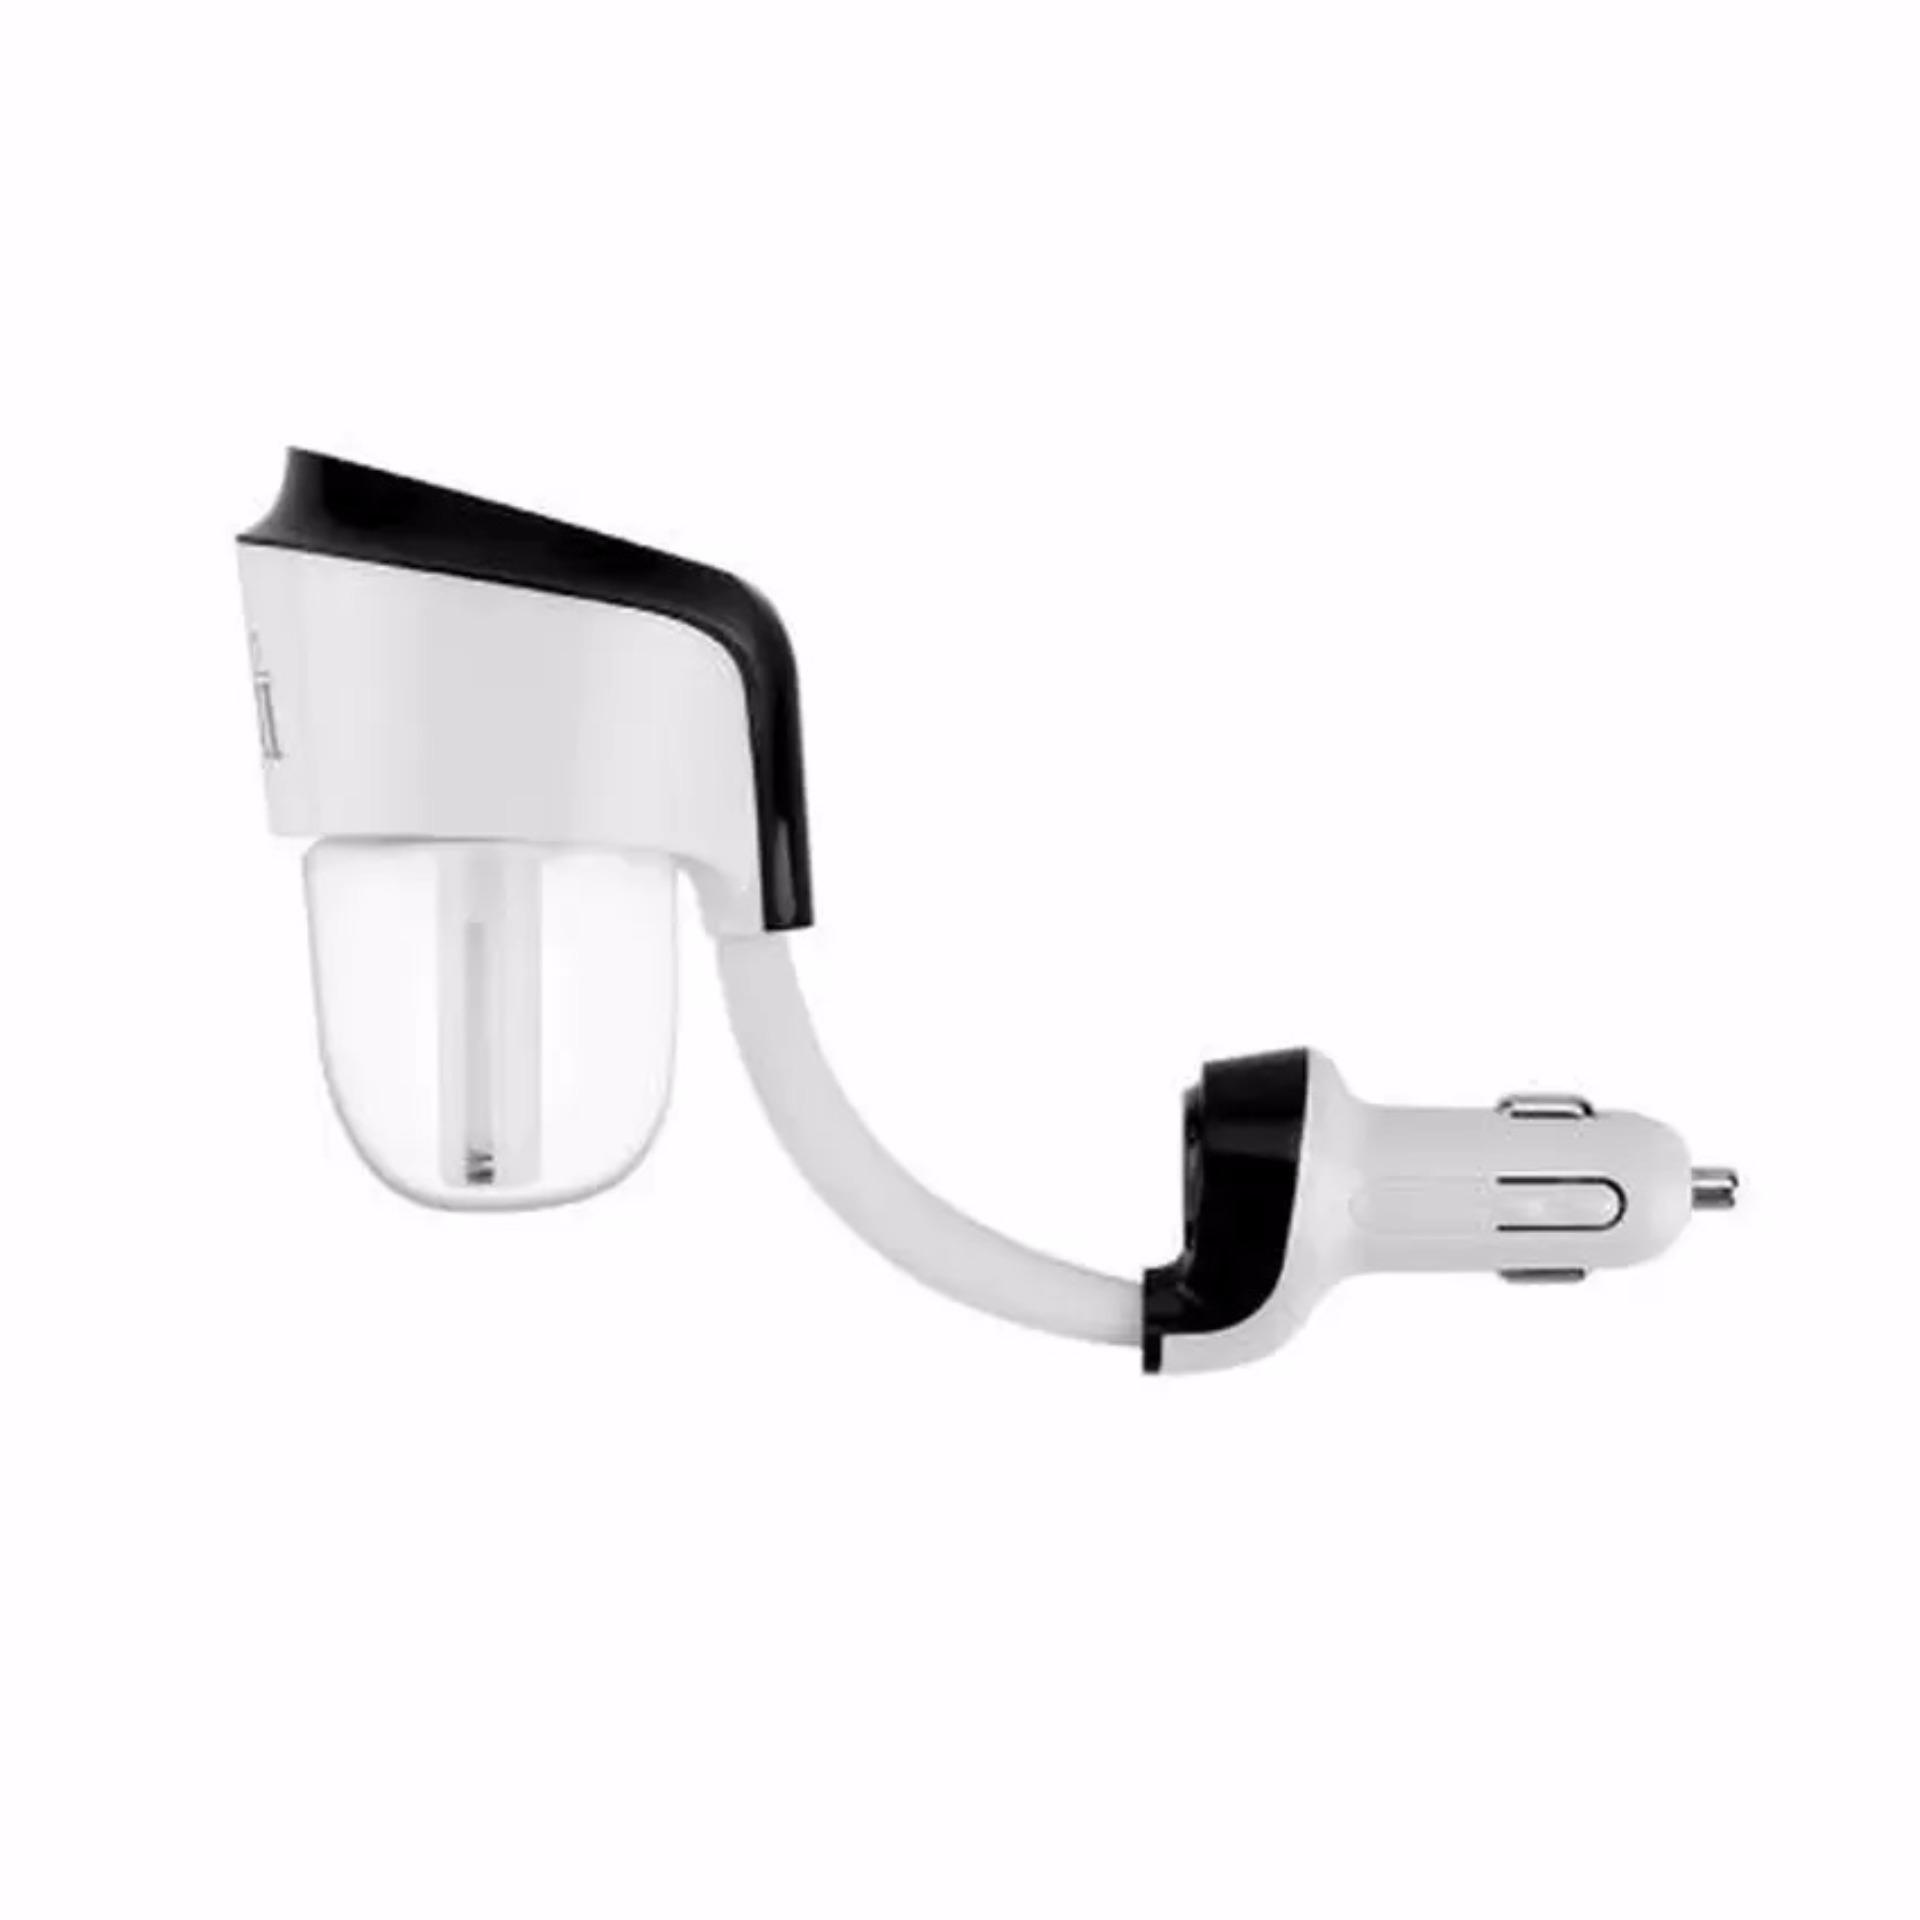 ... Pengharum Mobil USB Humidifier dan Spesifikasinya. Source · Car Humidifier II Air Freshener 12V / Car Charger - Black